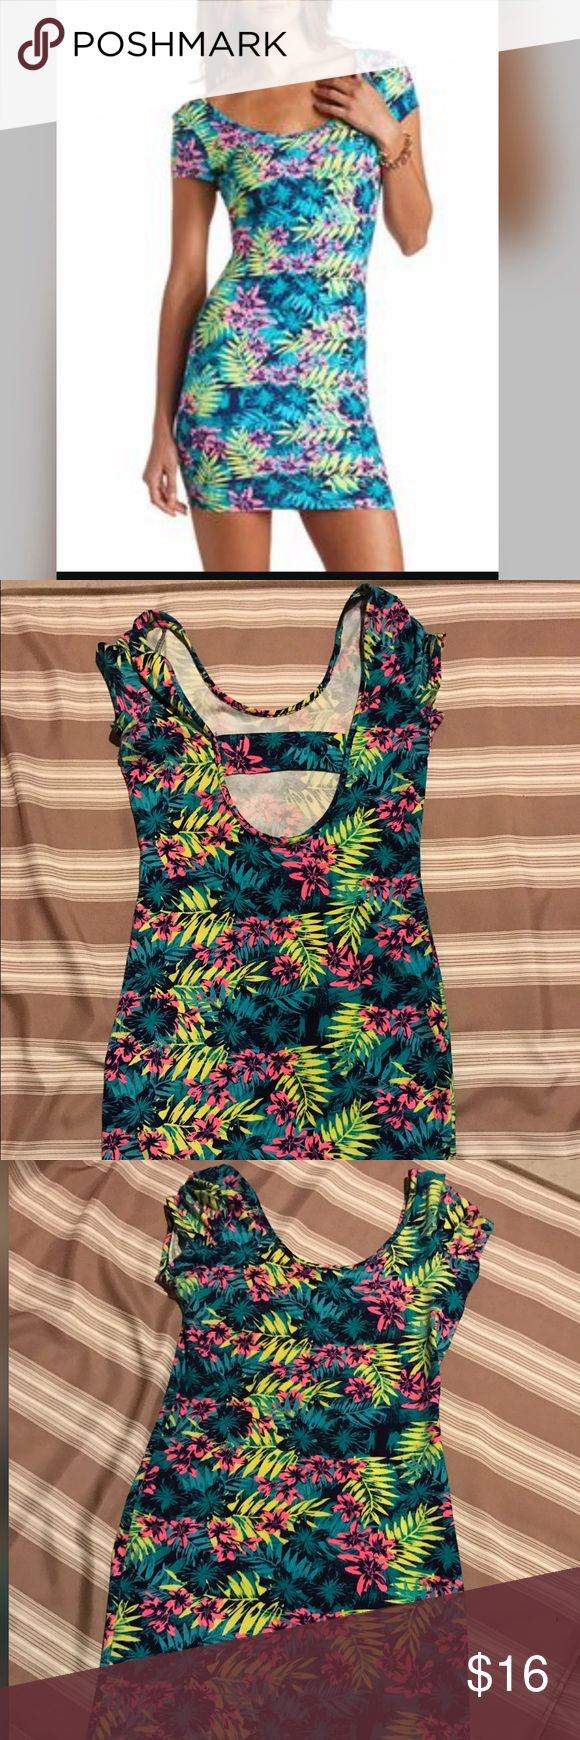 Charlotte Russe M Tropical Dress EUC. Stretchy material. Open back style. 🚫No trades ✅Reasonable offers submitted though offer button accepted. 🚭Smoke free home💌Laundered before shipped Charlotte Russe Dresses